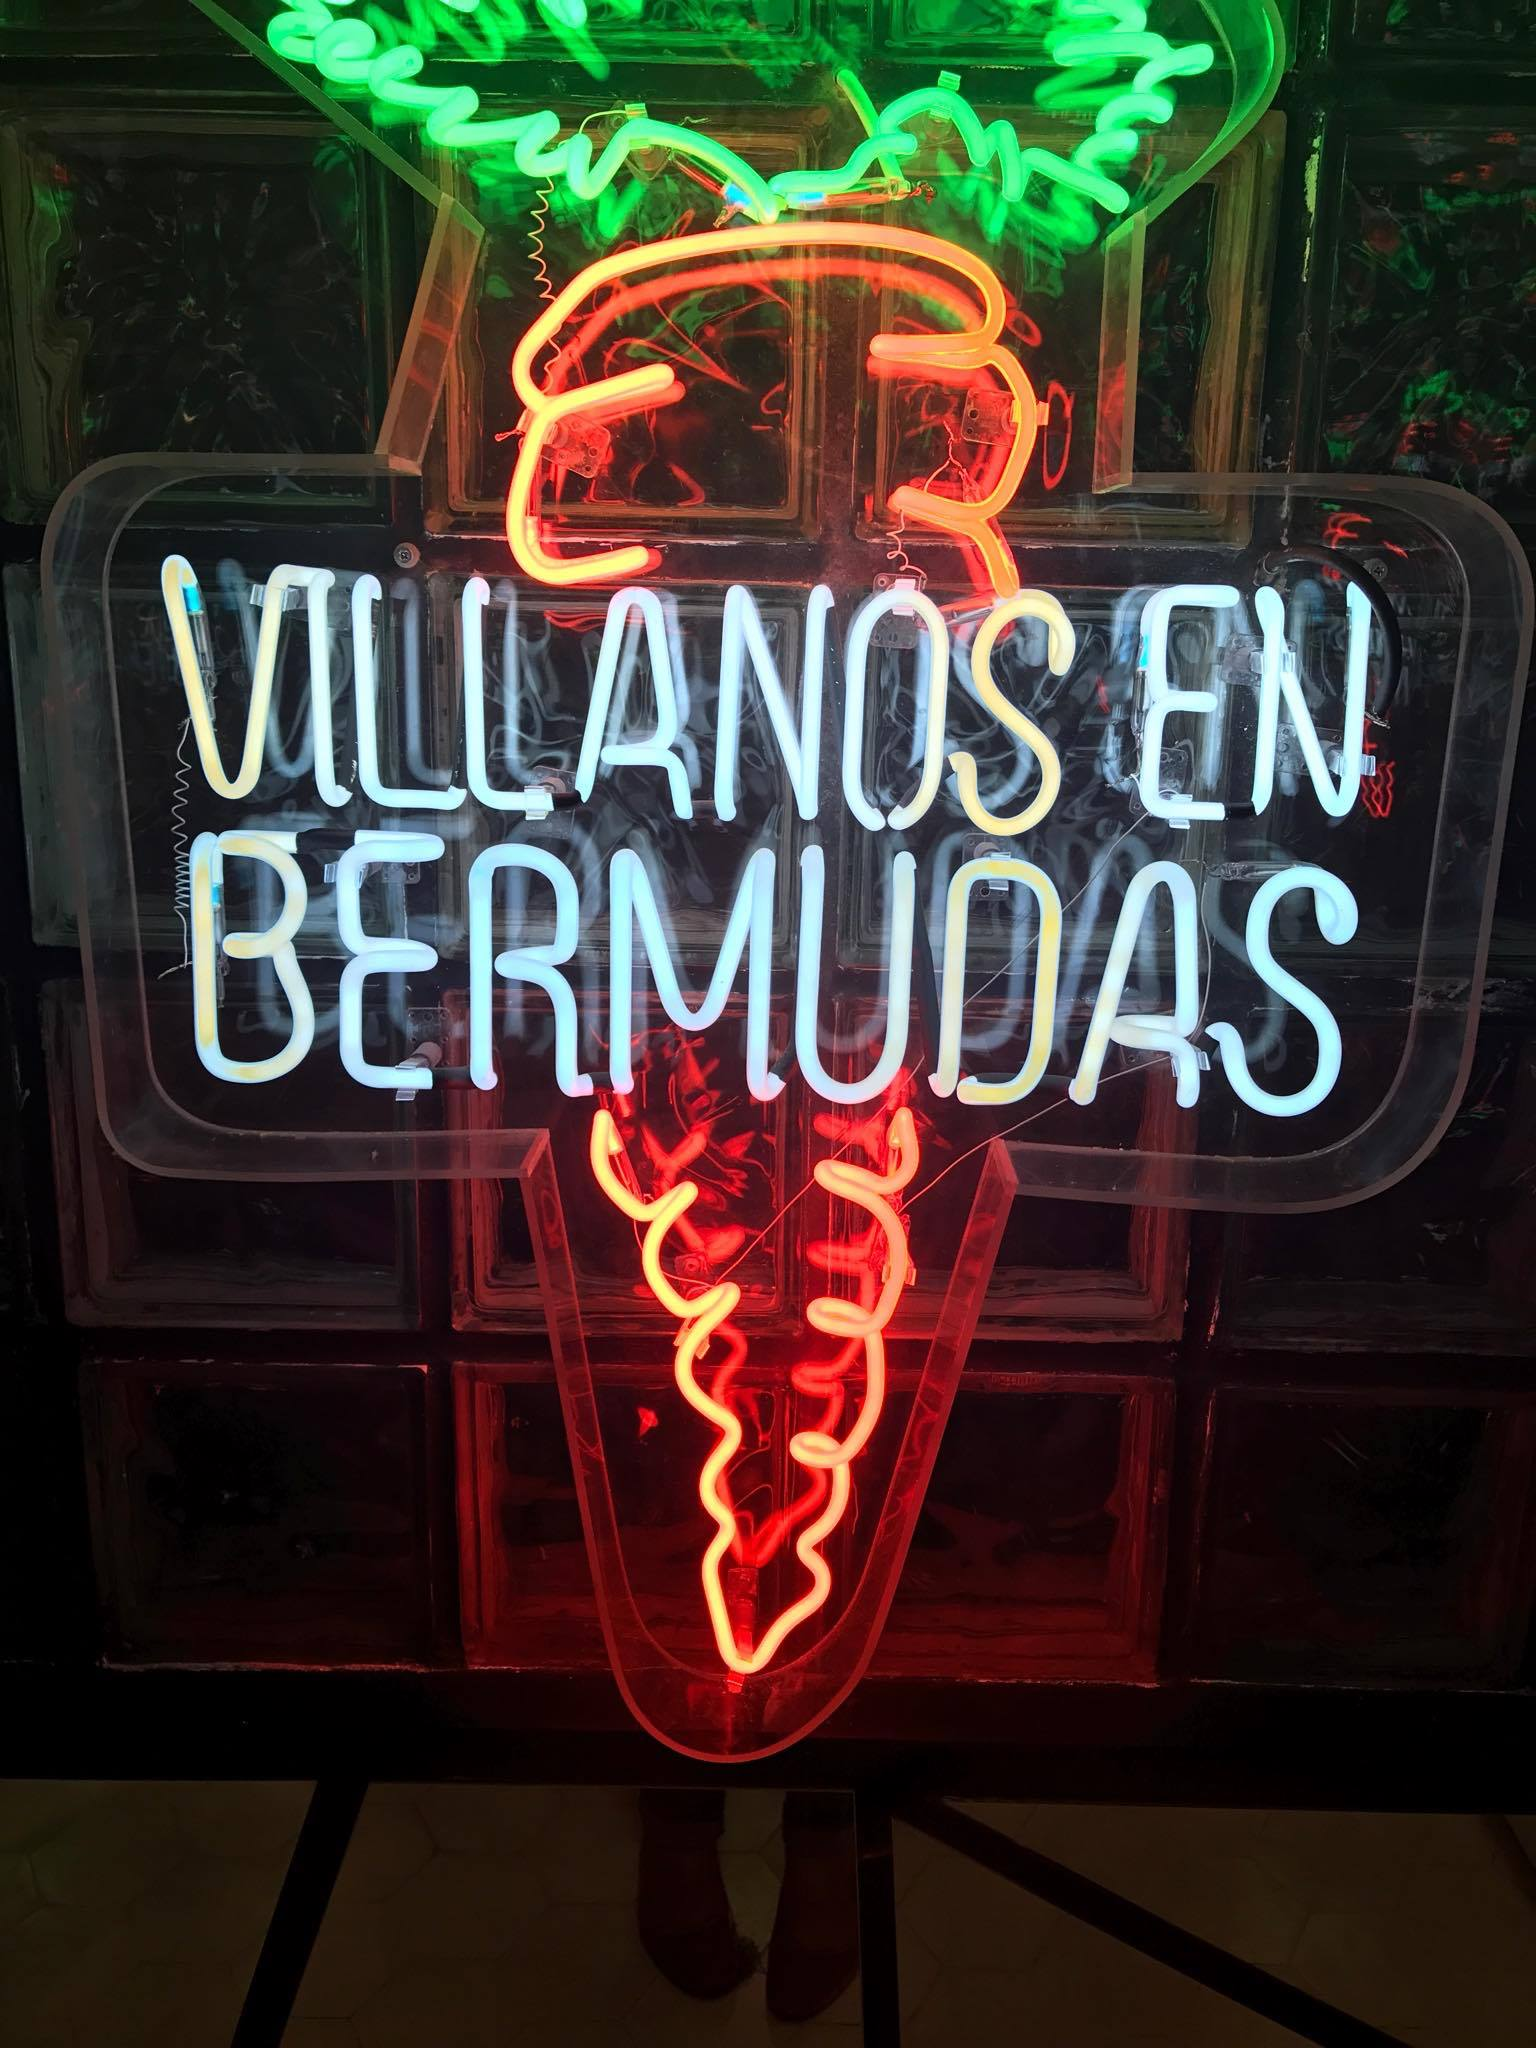 I fell in love with the décor of Villanos en Bermudas. The living areas were simple and elegant, while the restrooms were eccentric, filled with mirrors and lights.